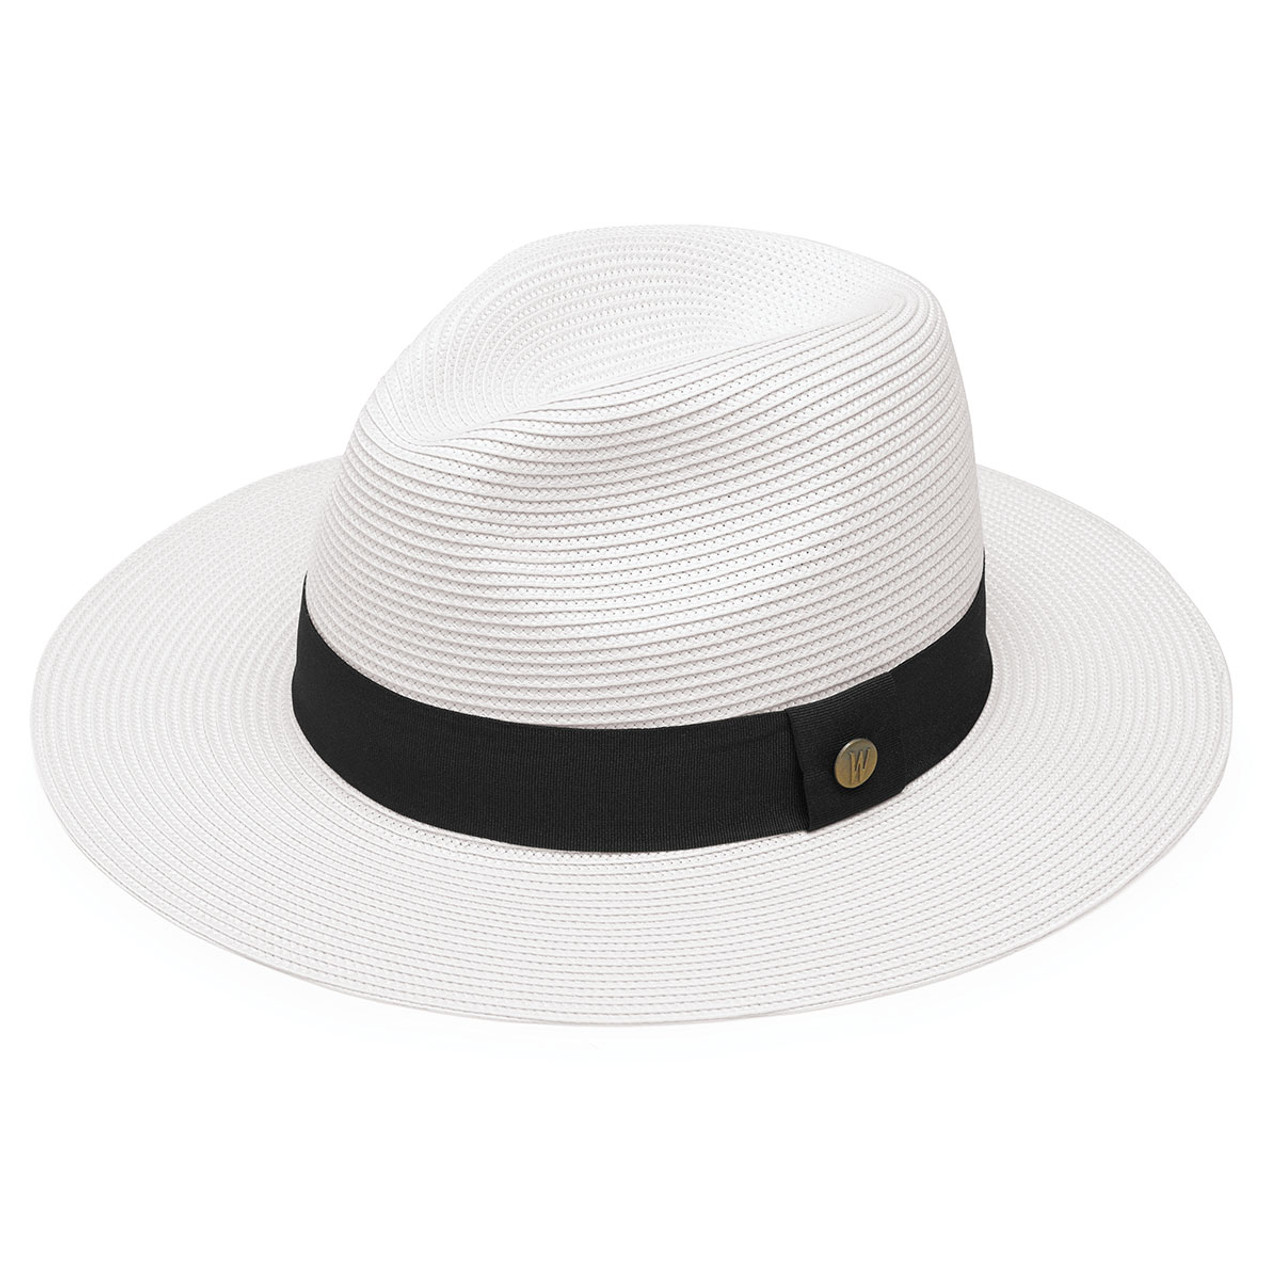 a8d9555f82b9 Women's Wallaroo Frankie UPF50+ Sun Hat | Ladies Sun Hats